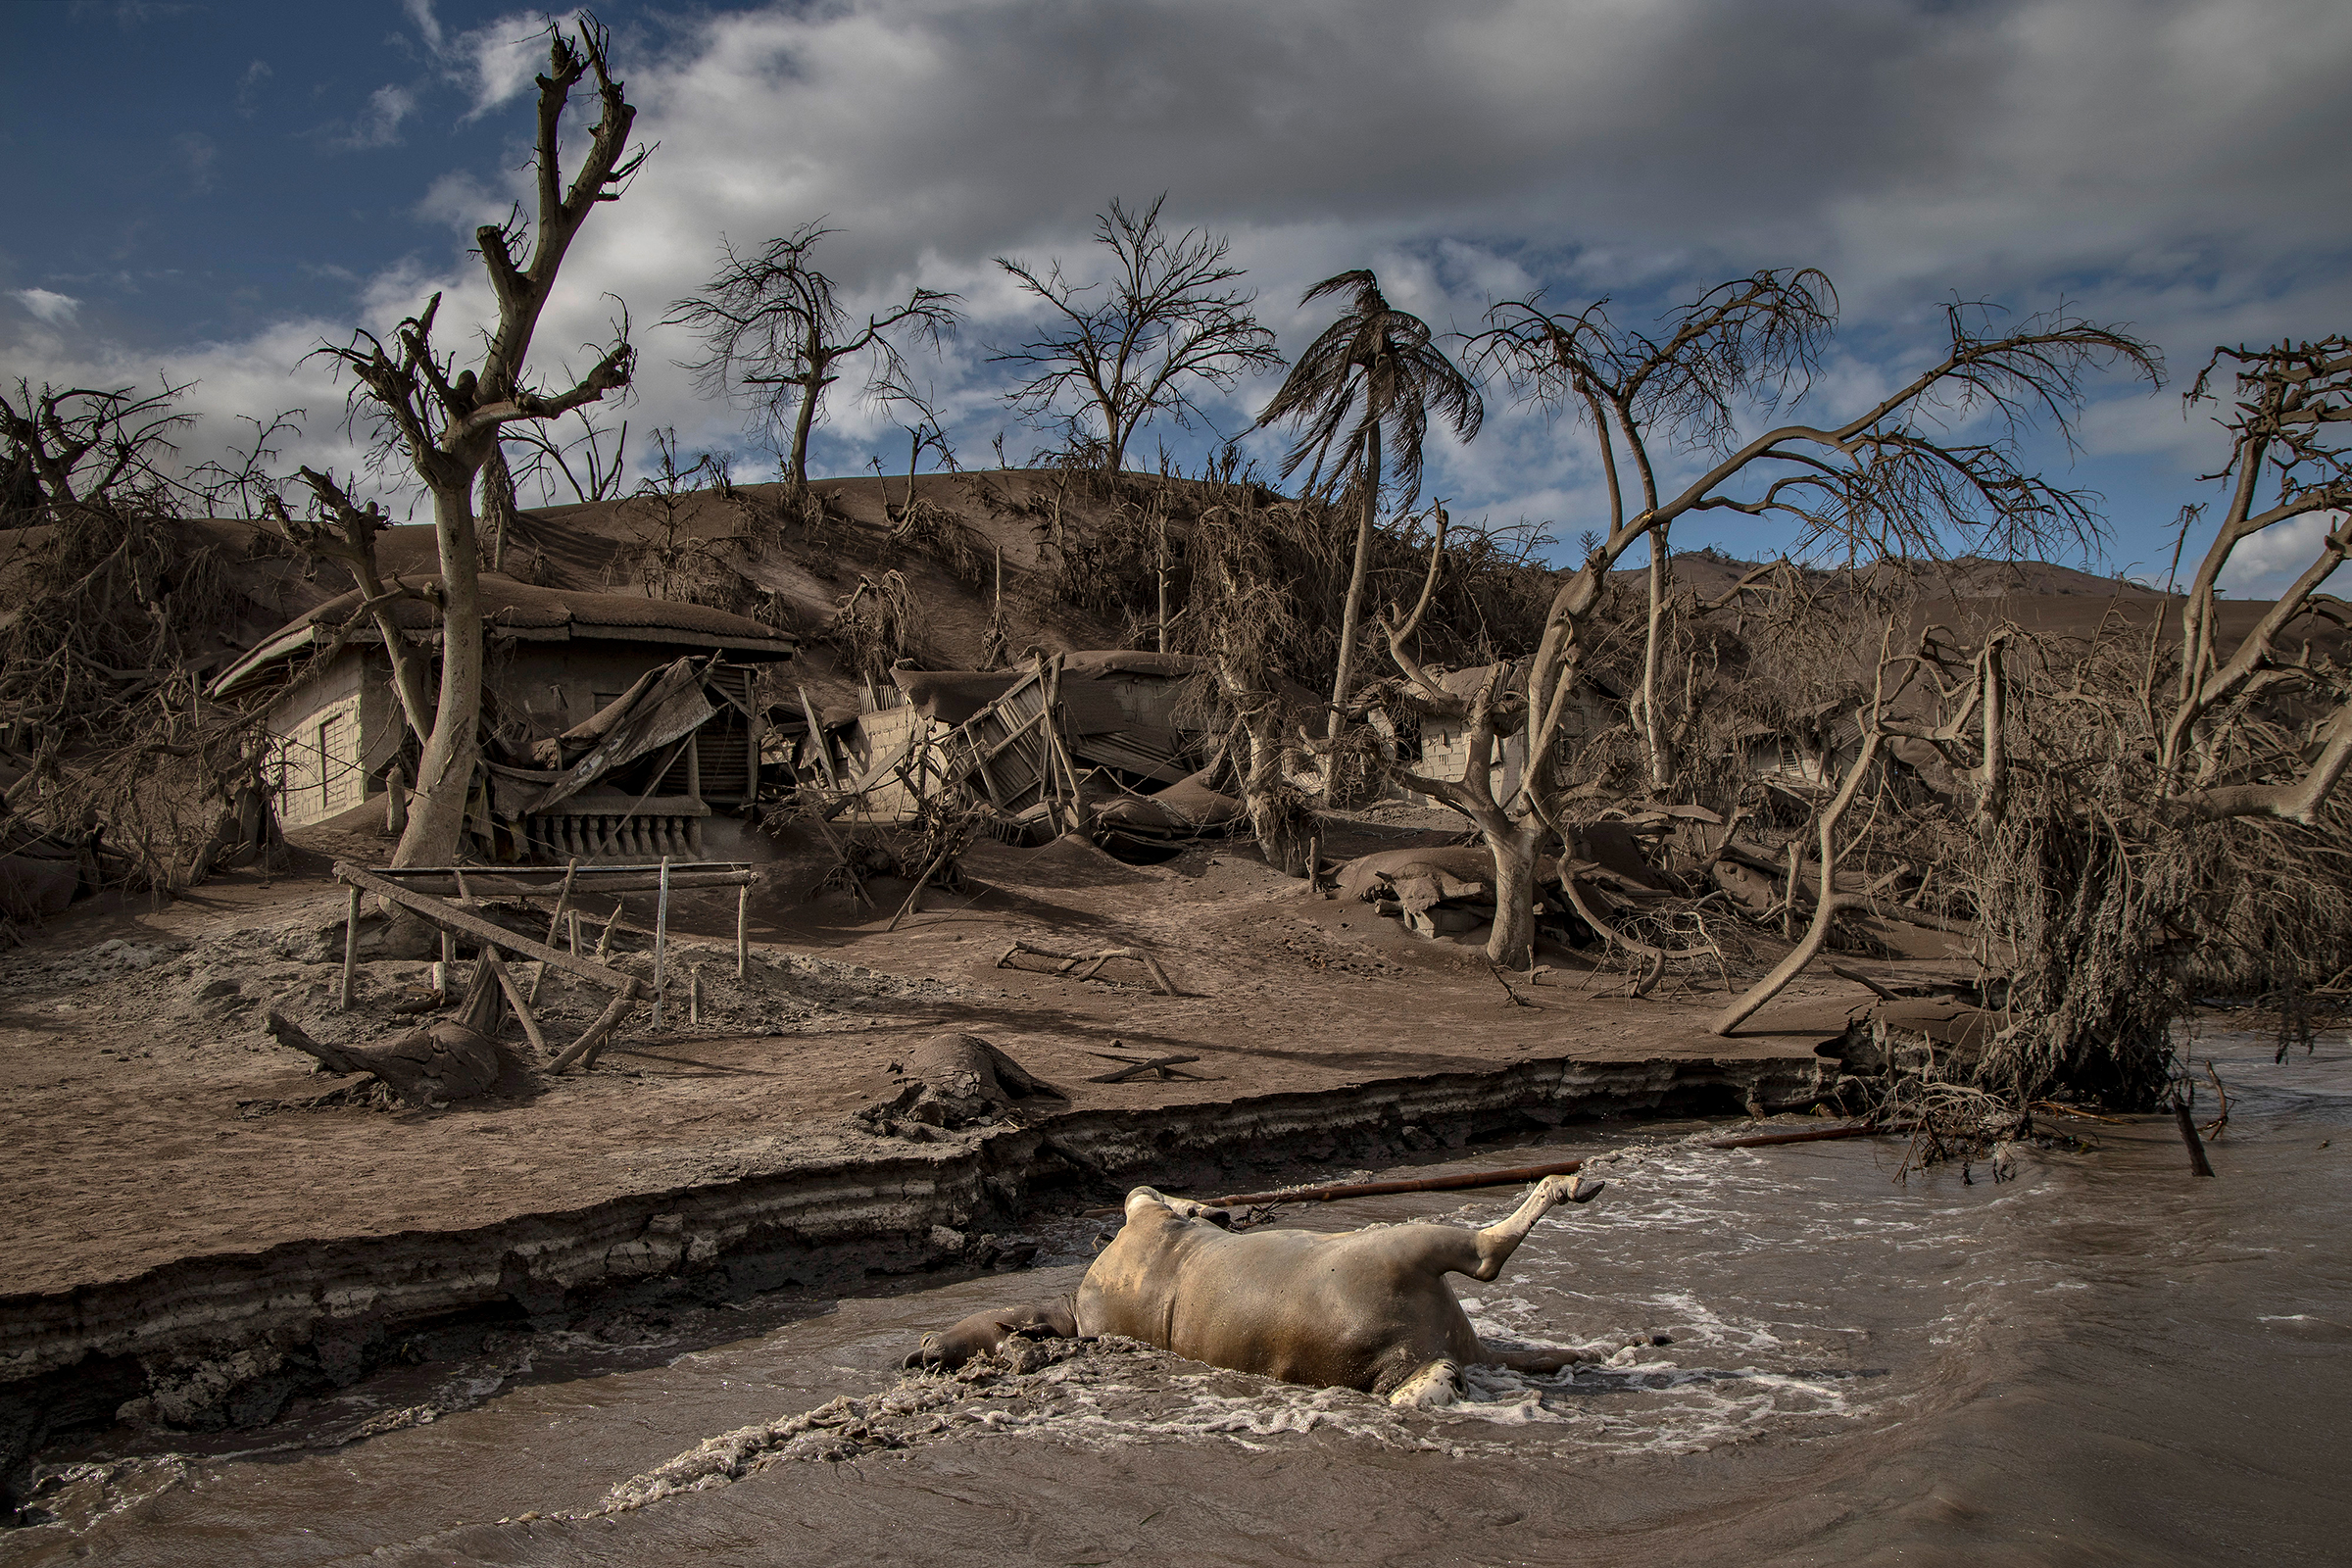 A dead cow rests on the shore. Nearby remains of animals, trees and houses are buried in ash on the island.